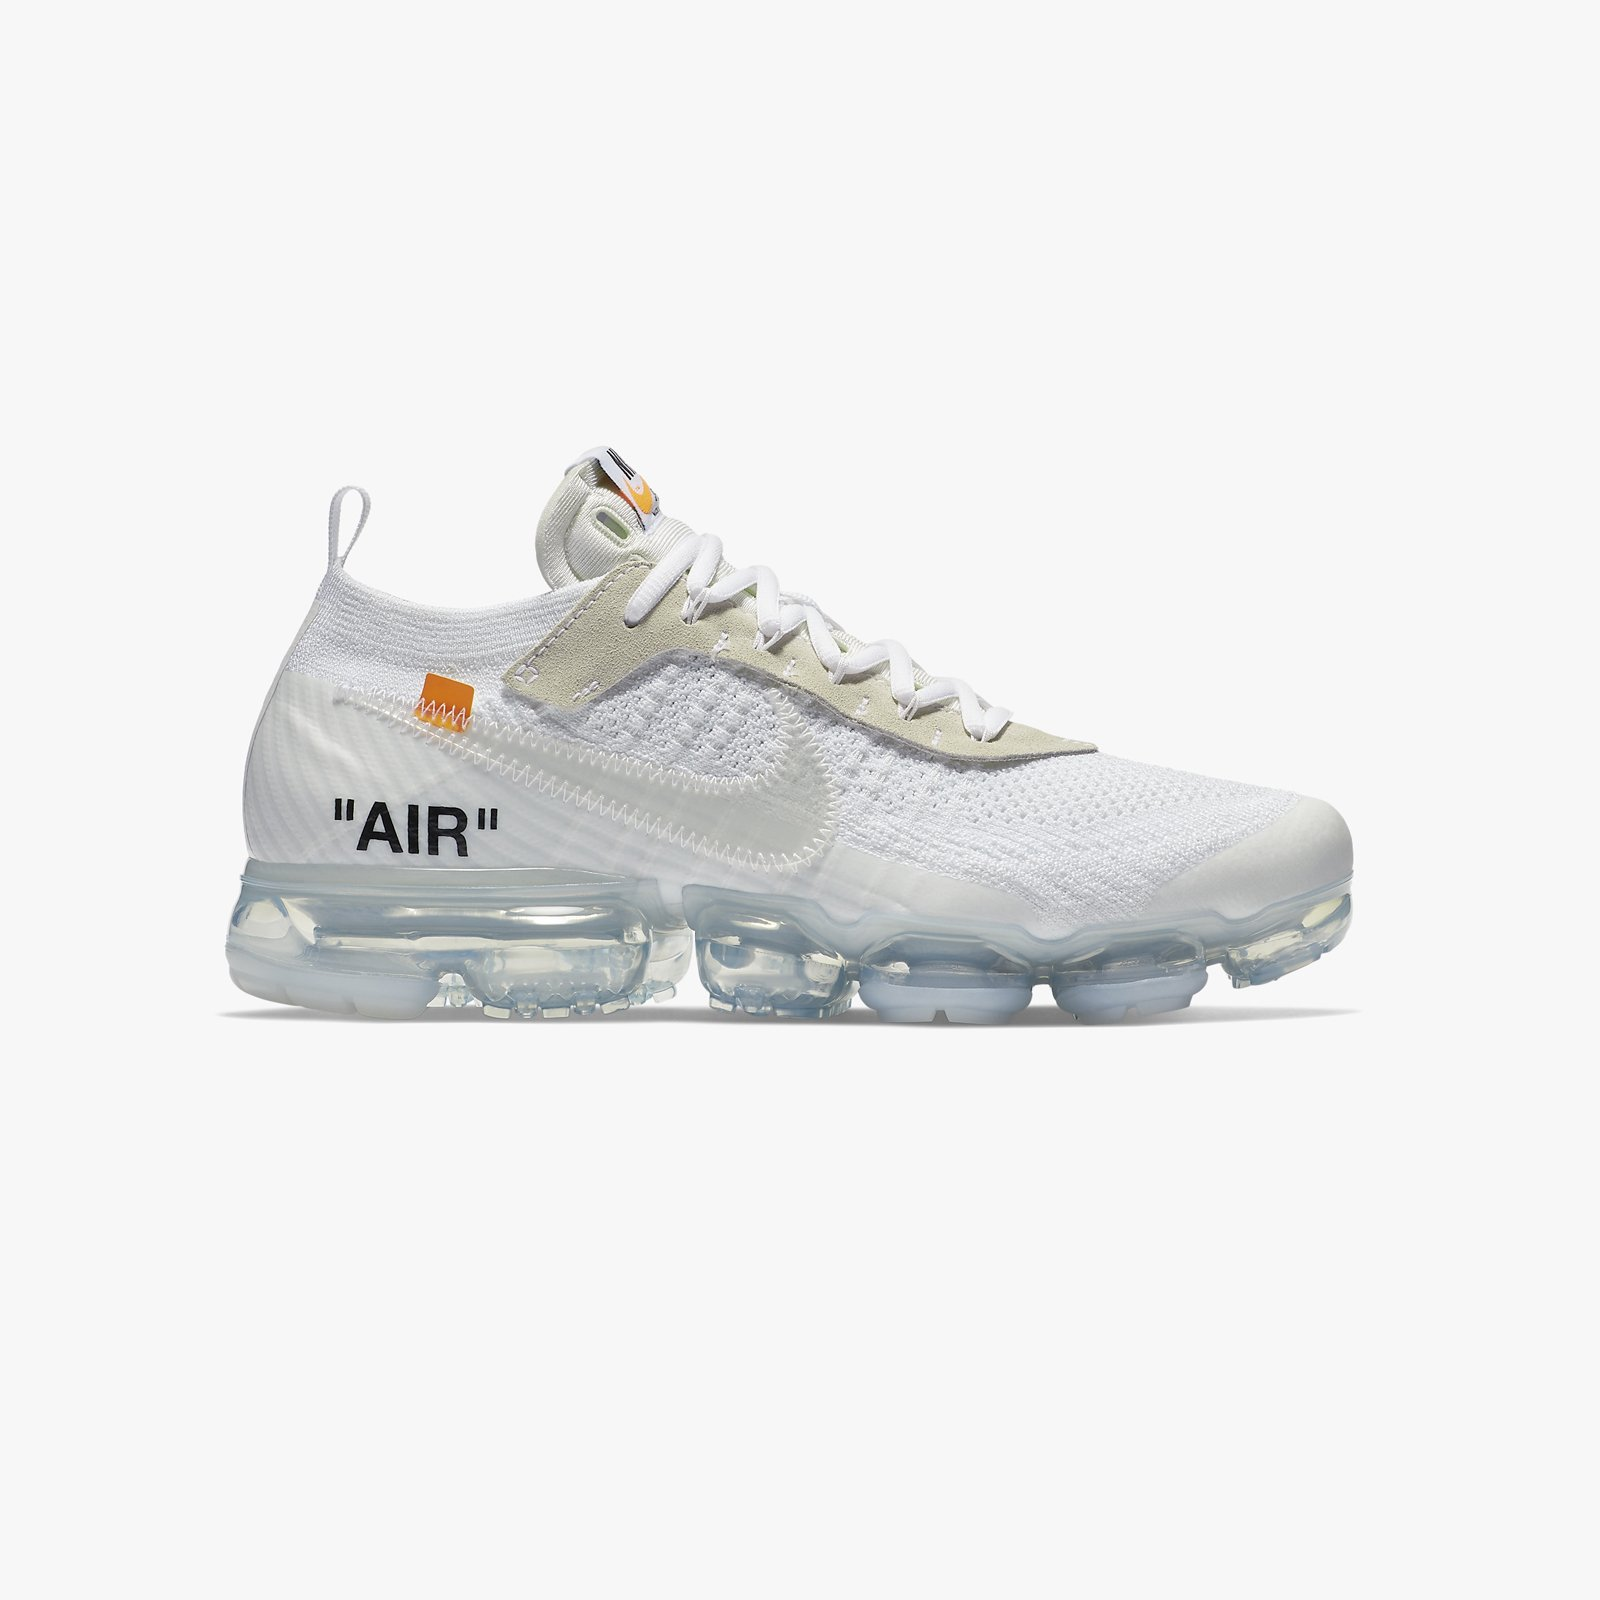 c2f8000fe1 Nike The 10: Air Vapormax FK - Aa3831-100 - Sneakersnstuff ...